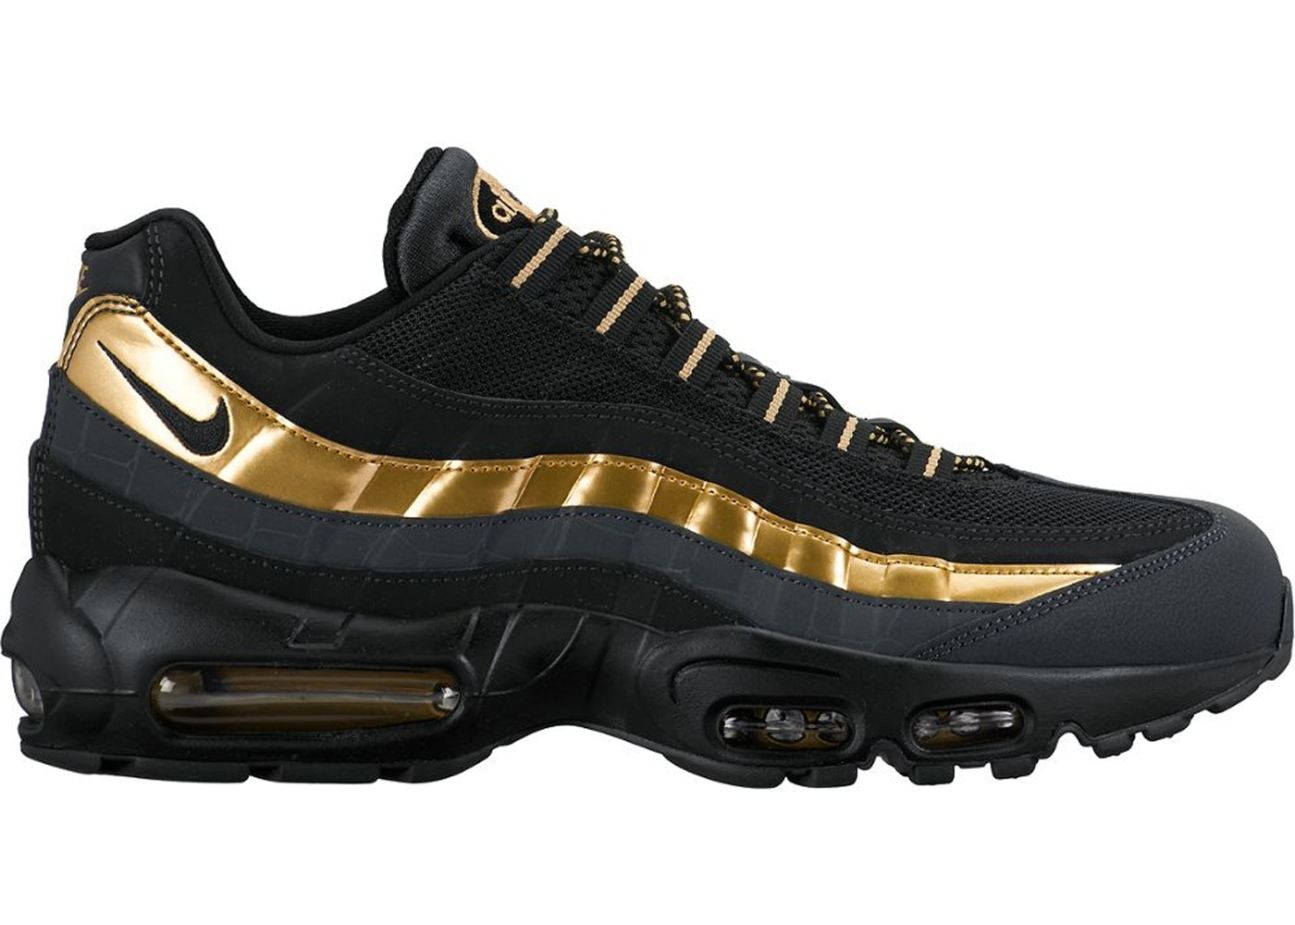 meet new high quality low price sale Nike Air Max 95 Black/Metallic Gold/ Anthracite-38416007